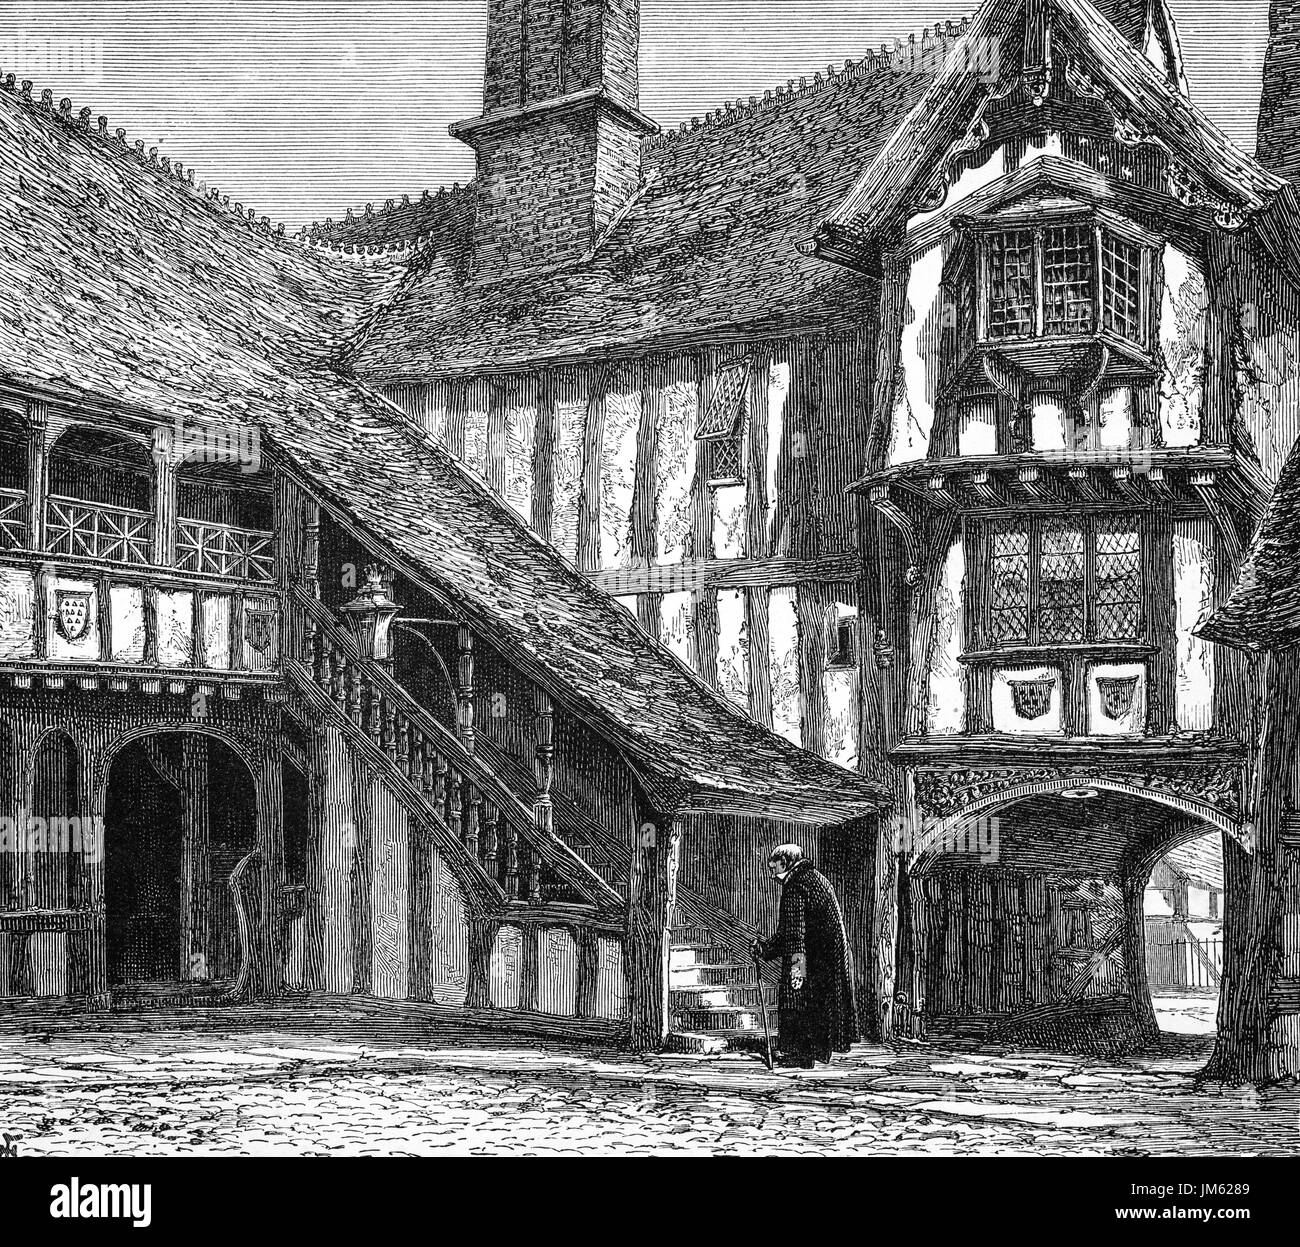 1870: The courtyard of Leicester's Hospital.  The Hospital is a historic group of timber-framed buildings in Warwick High Street dating mainly from the late 14th Century. In the reign of Queen Elizabeth I it became a place of retirement for old warriors known as the Brethren. The Brethren and Master, who still live within the walls of the building, are a living legacy of almost 450 years of history,  Warwickshire, England. - Stock Image